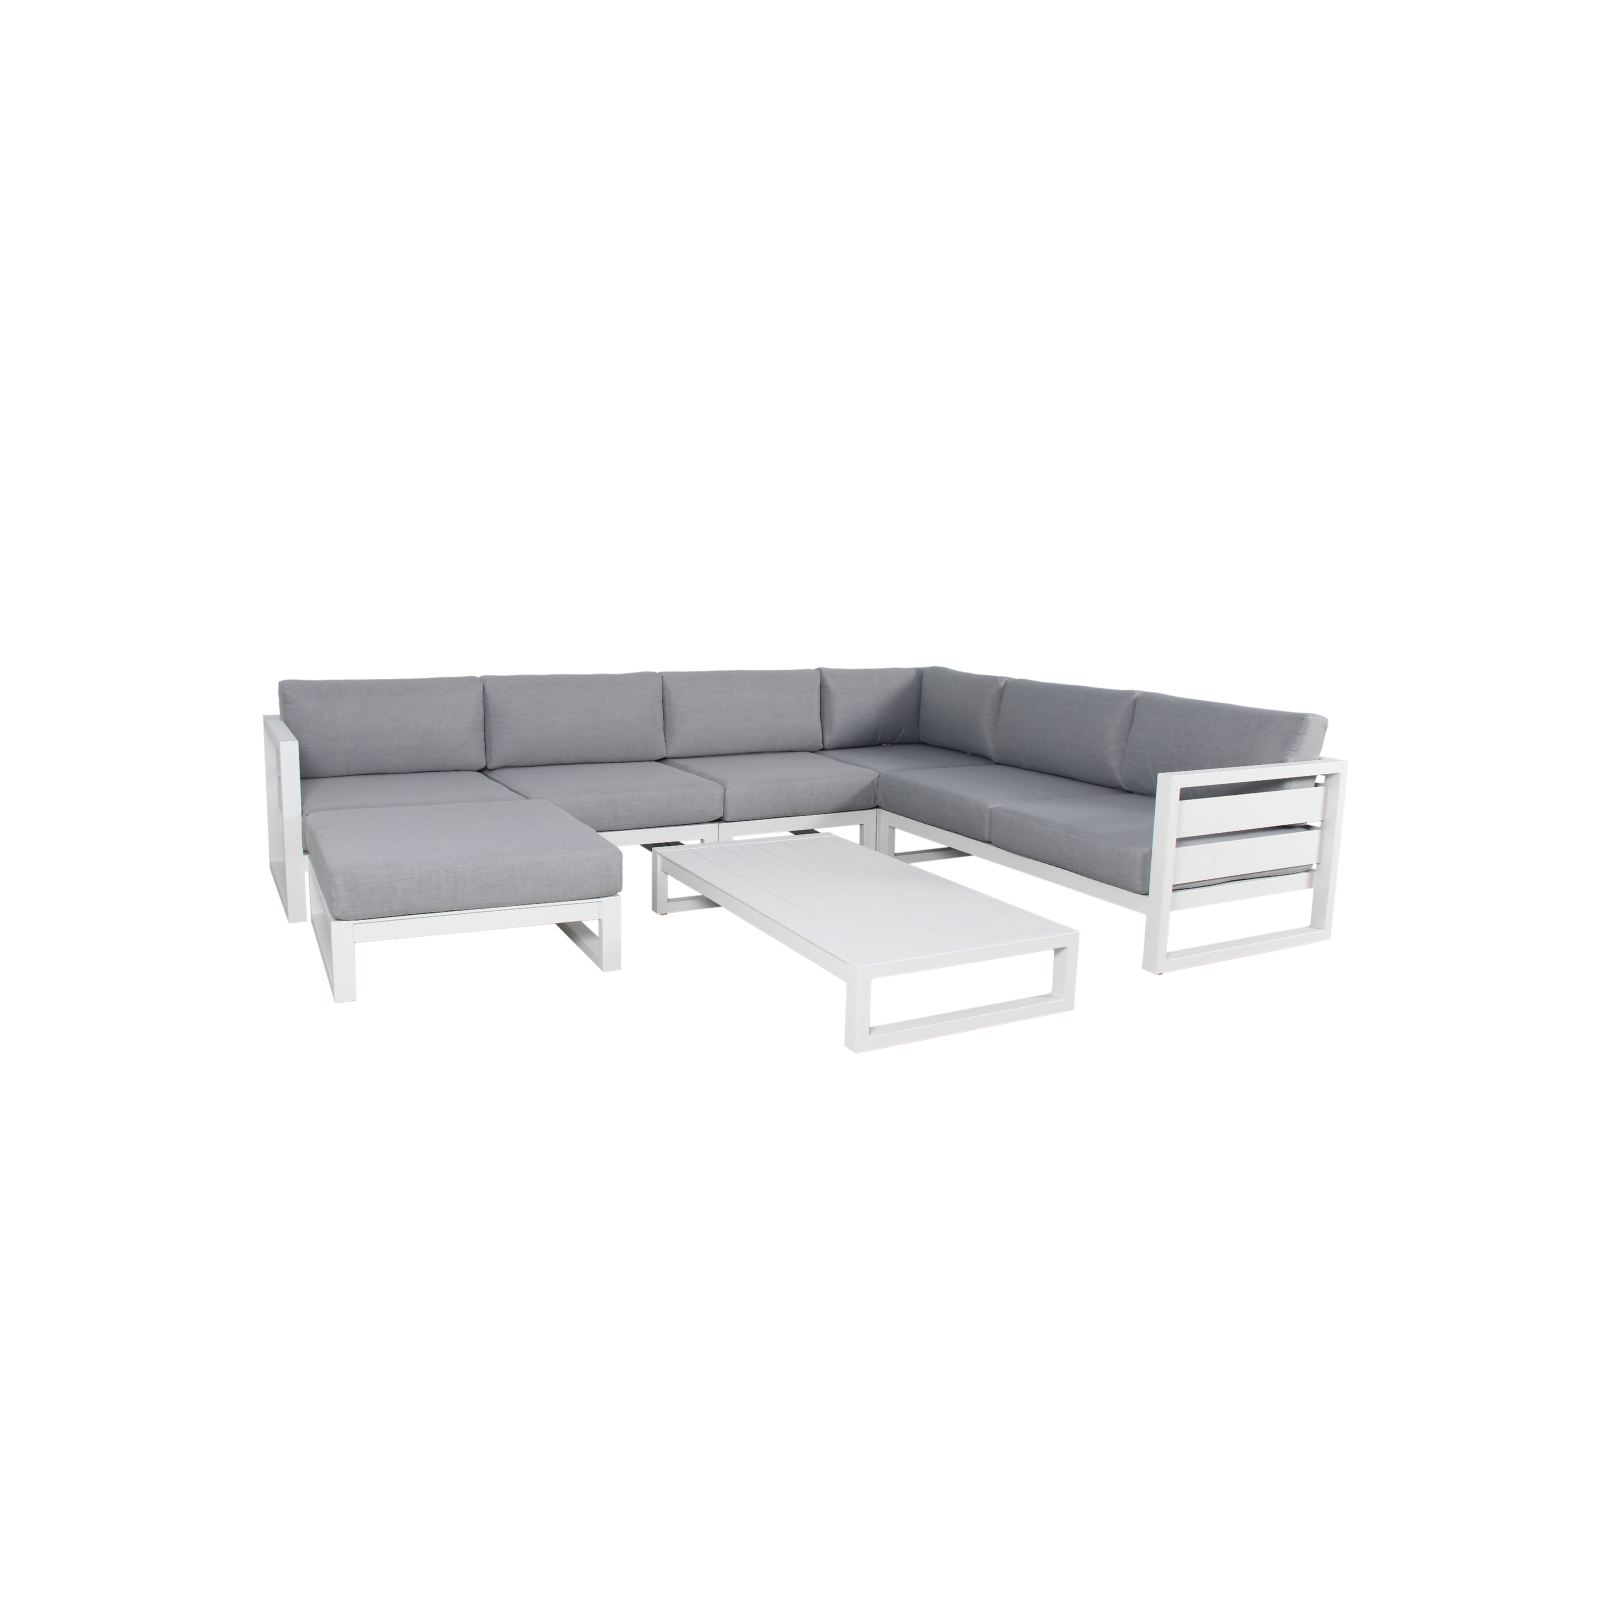 Picture of: Outdoor Furniture